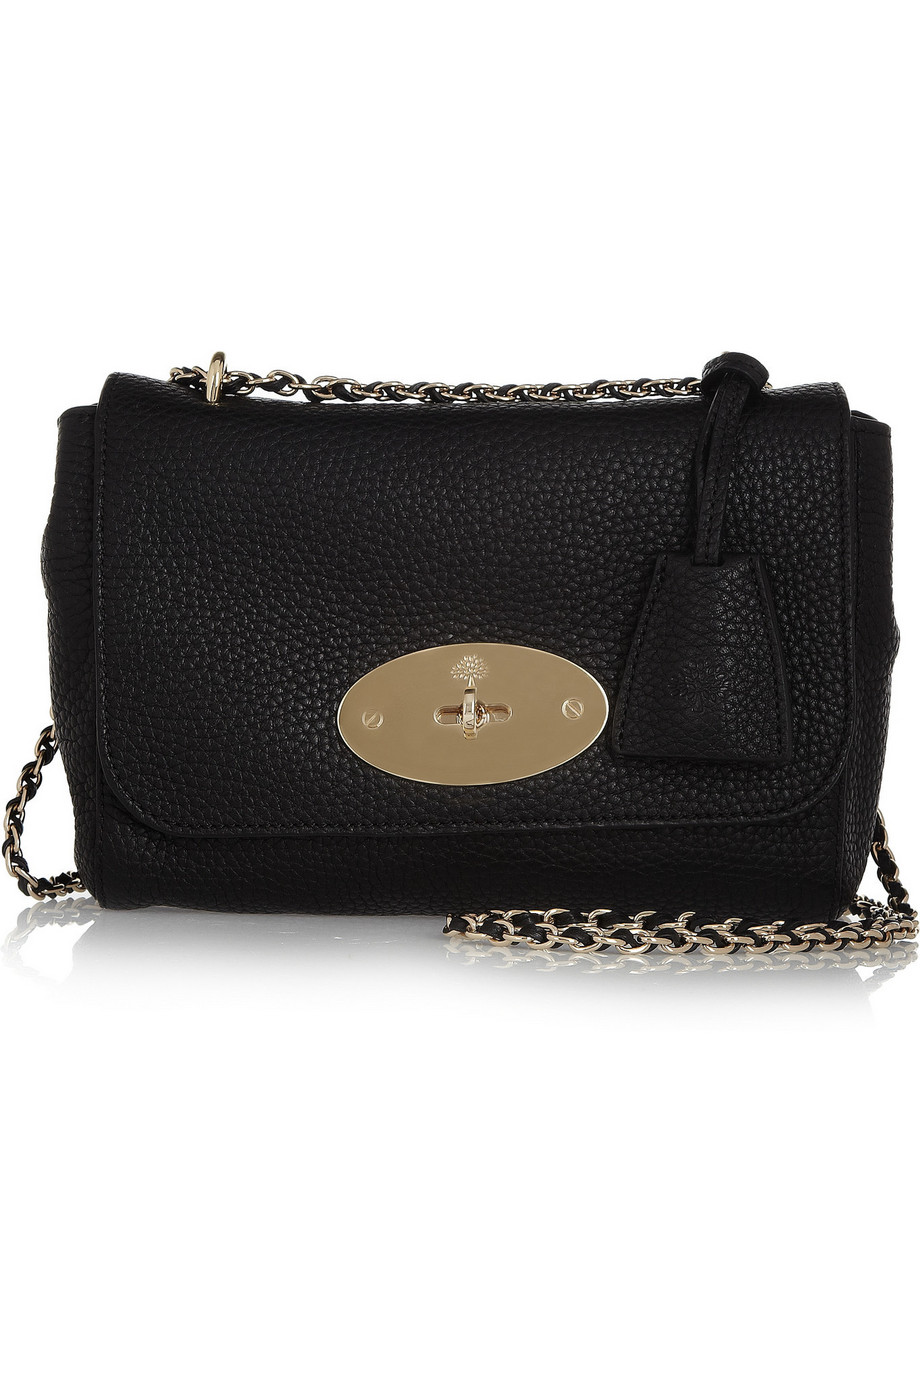 Mulberry Lily Leather Shoulder Bag 29